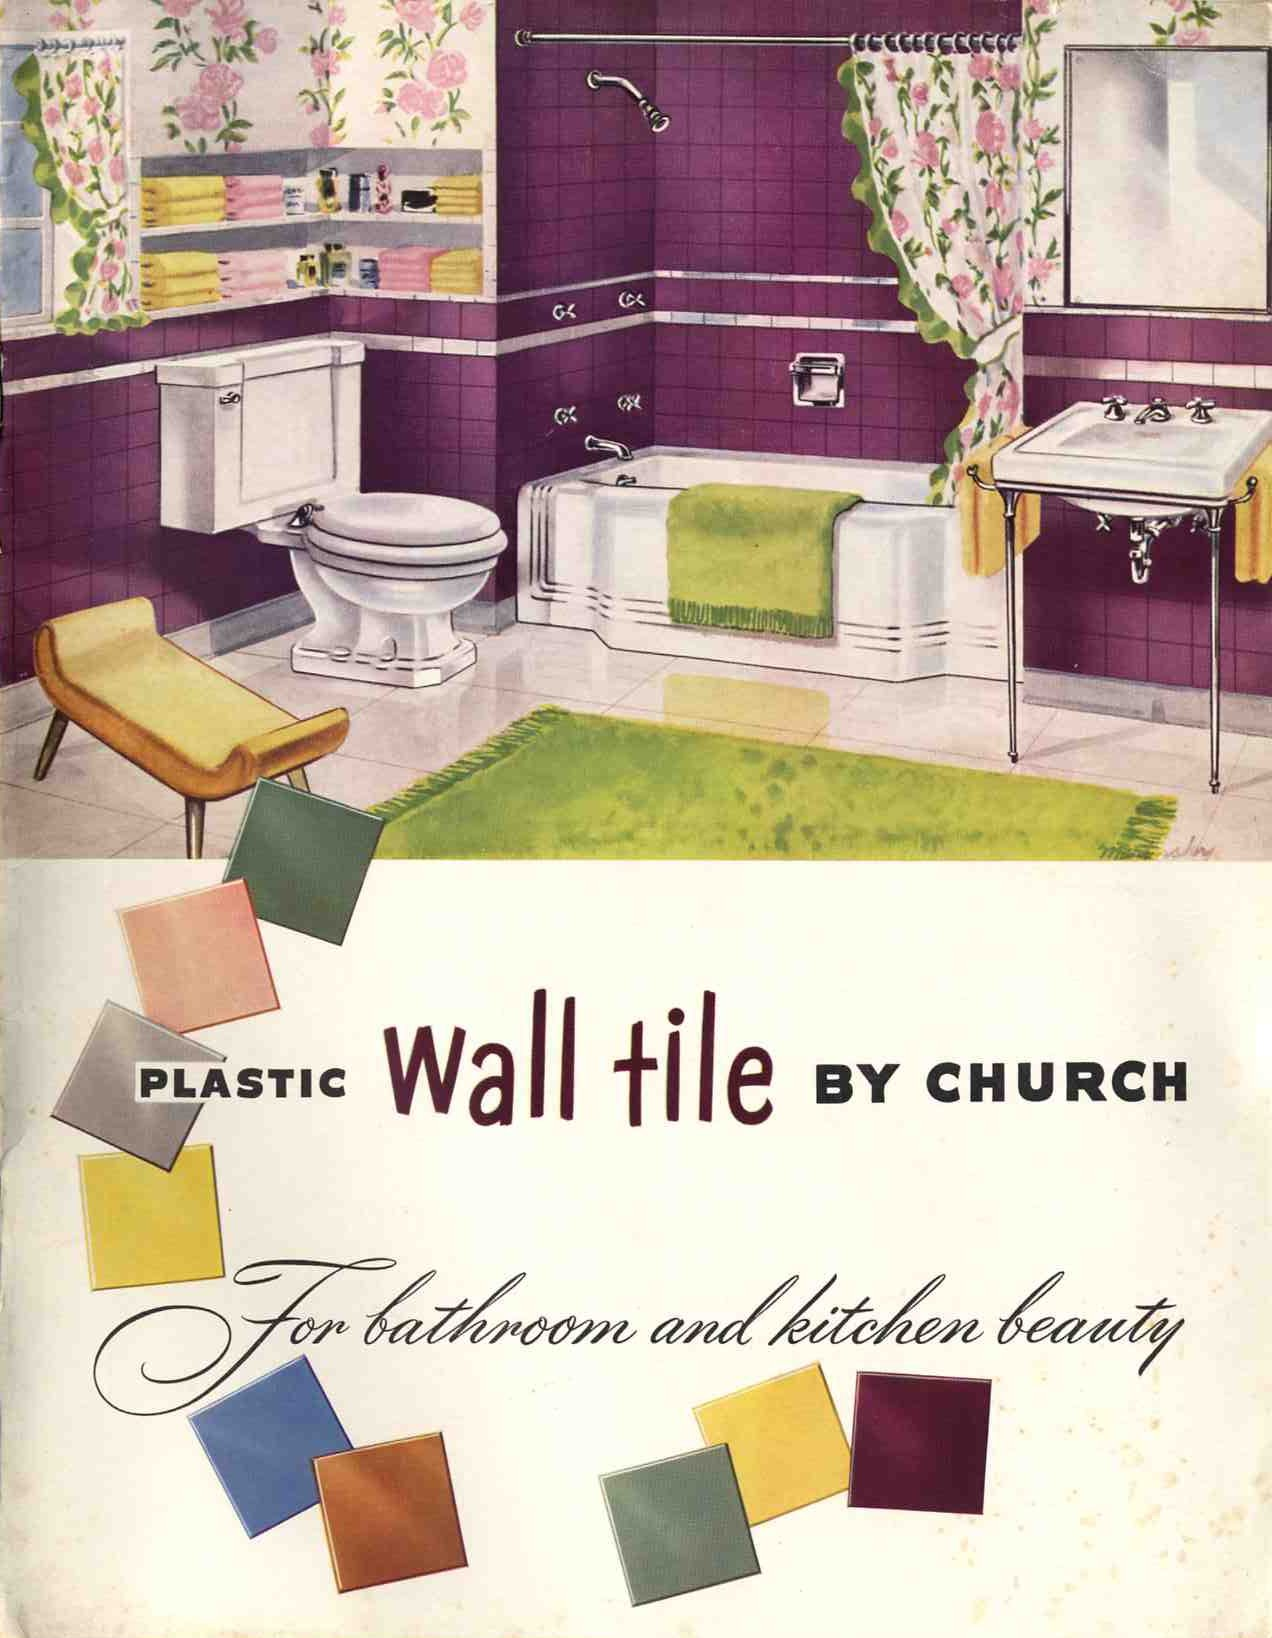 Plastic Bathroom Tile 20 Pages Of Images From 3 Catalogs Retro Renovation